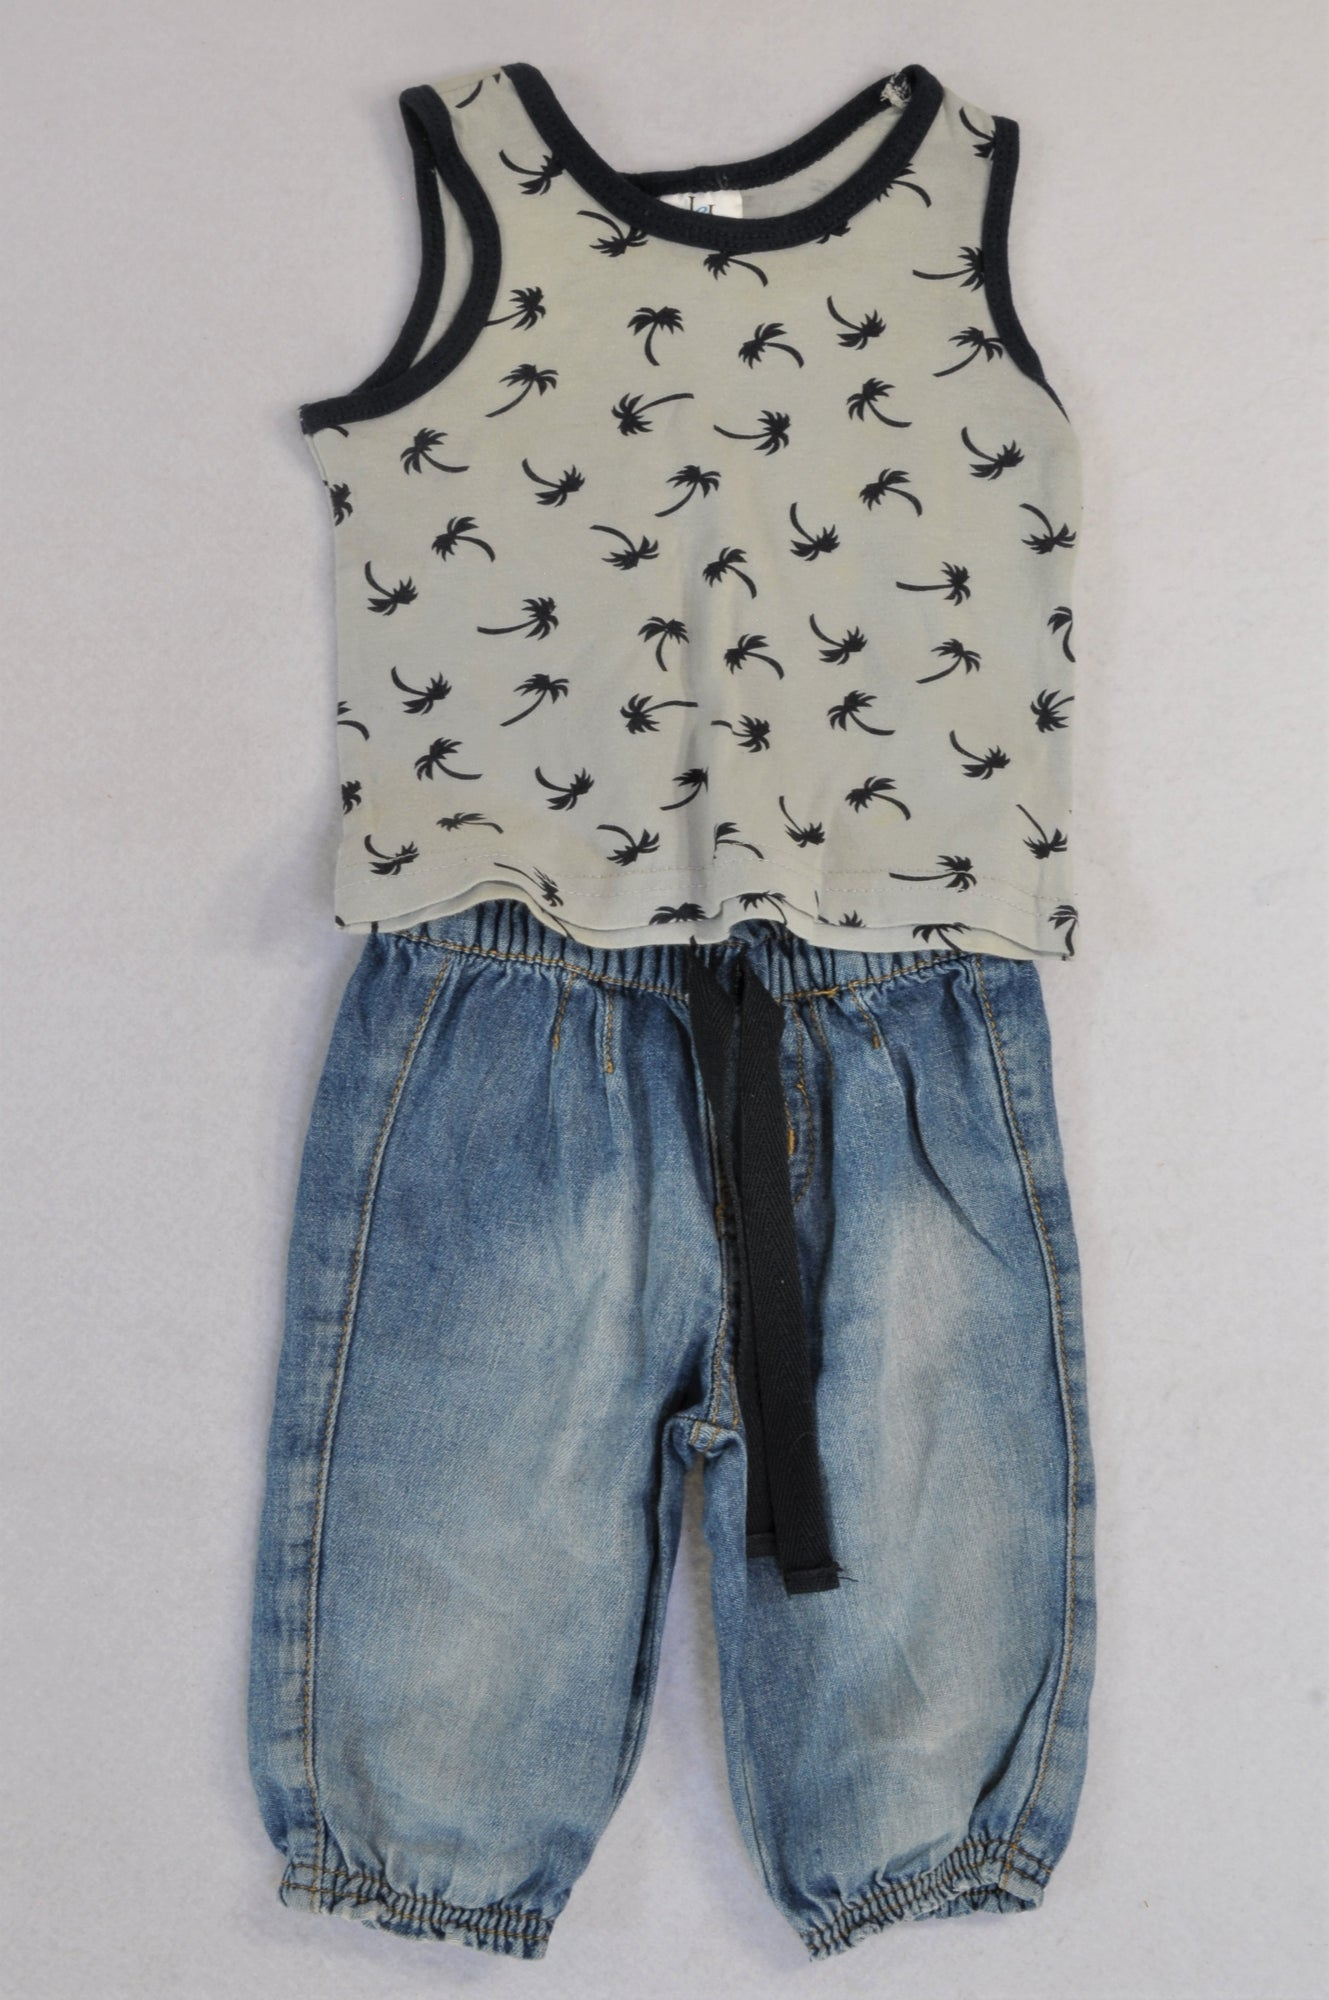 Mr. Price Grey Palm Tree Tank & Light Denim Jeans Outfit Boys 3-6 months